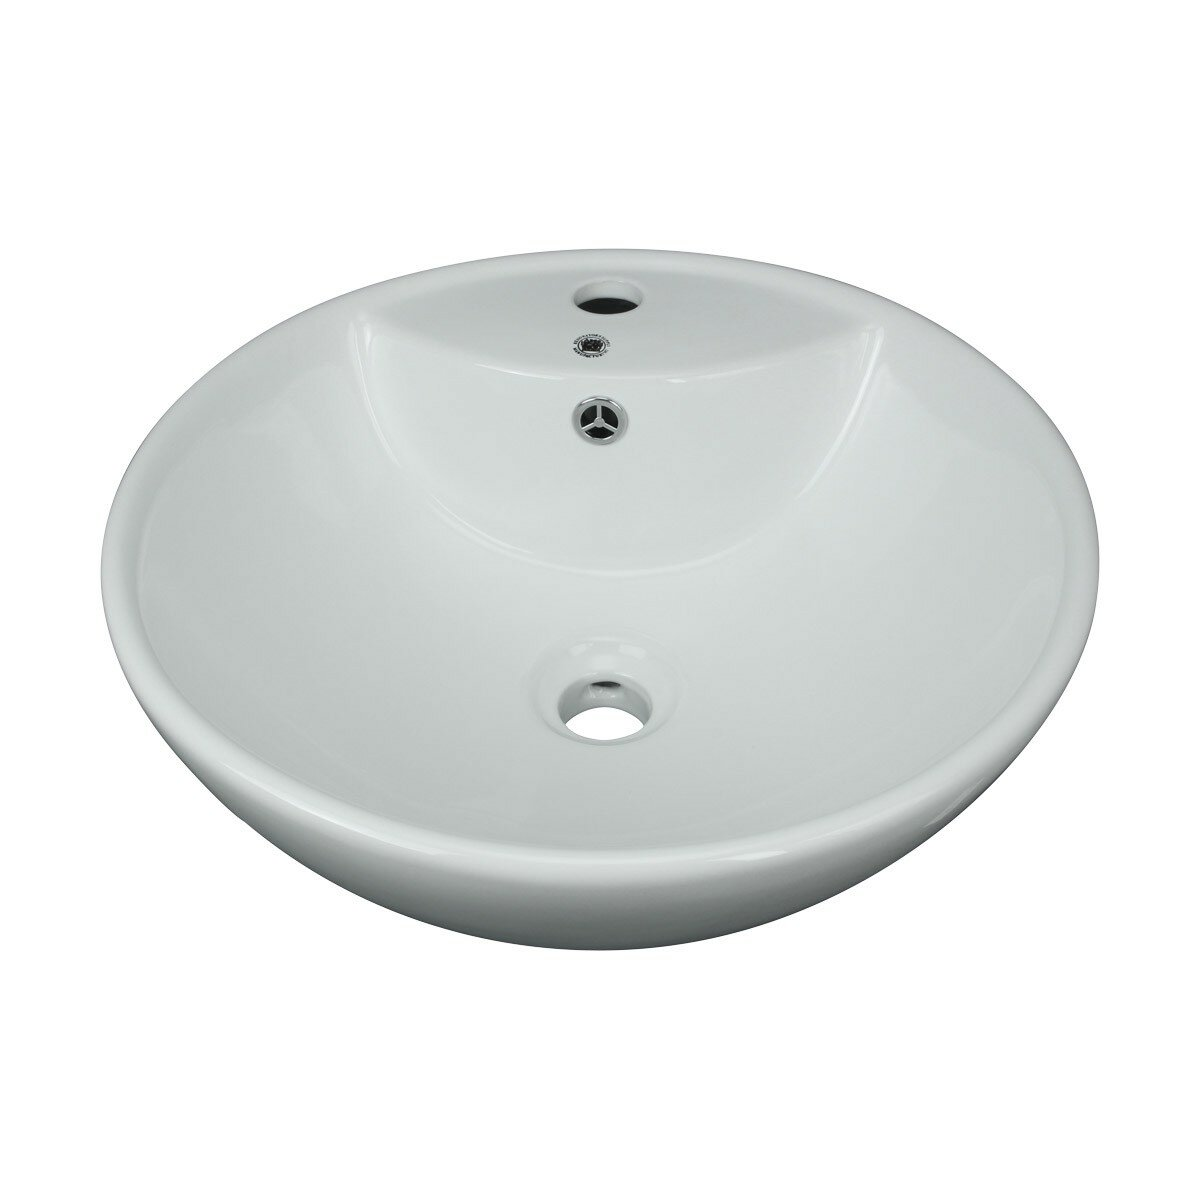 The Renovators Supply Inc Above Counter Vitreous China Circular Vessel Bathroom Sink With Overflow Wayfair